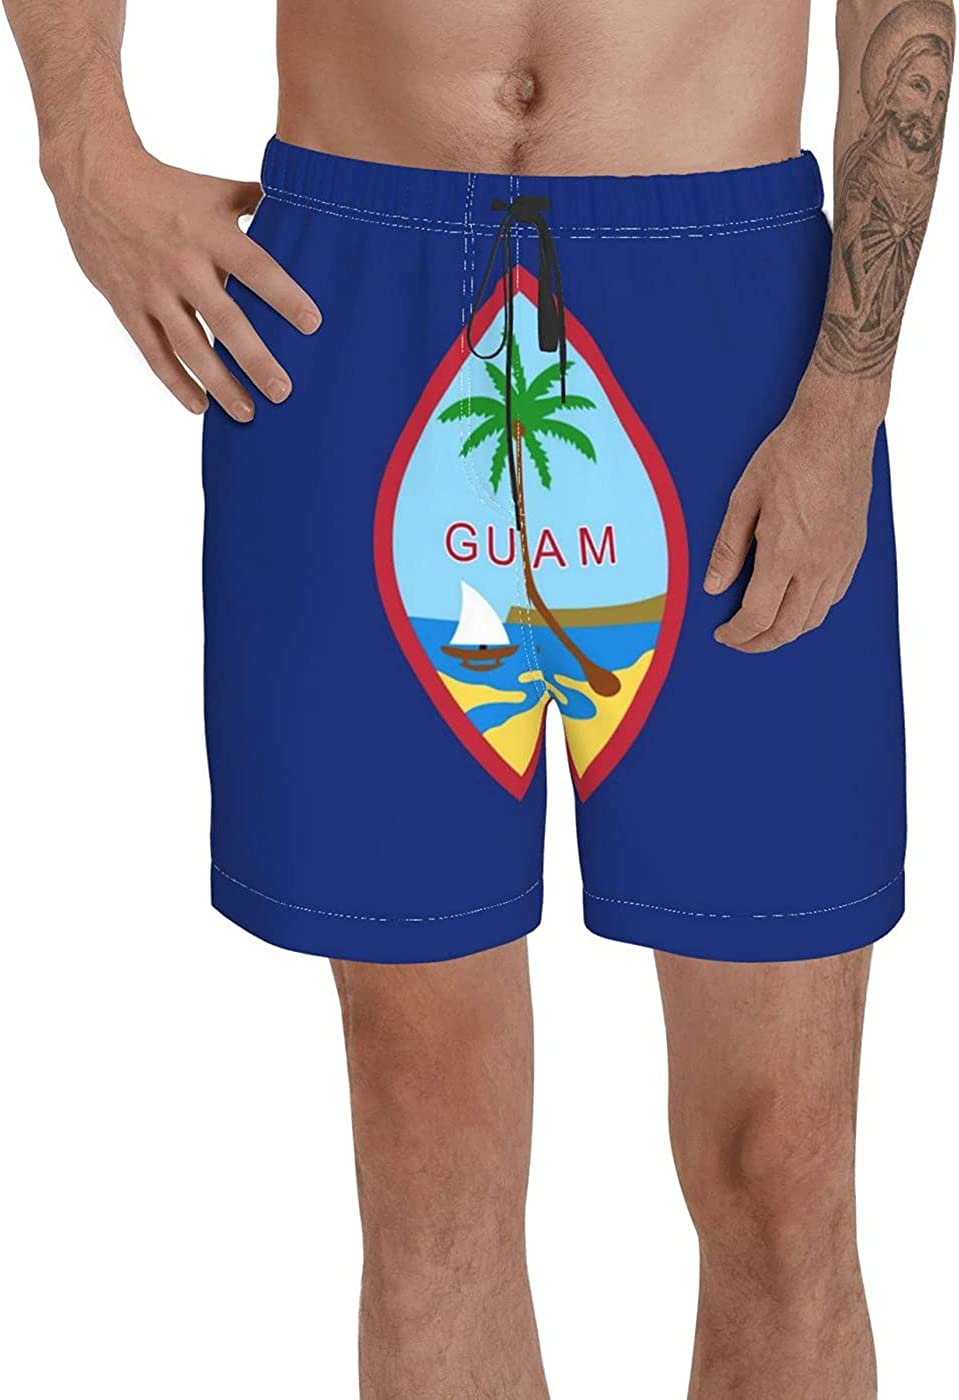 Count Guam Flag Men's 3D Printed Funny Summer Quick Dry Swim Short Board Shorts with